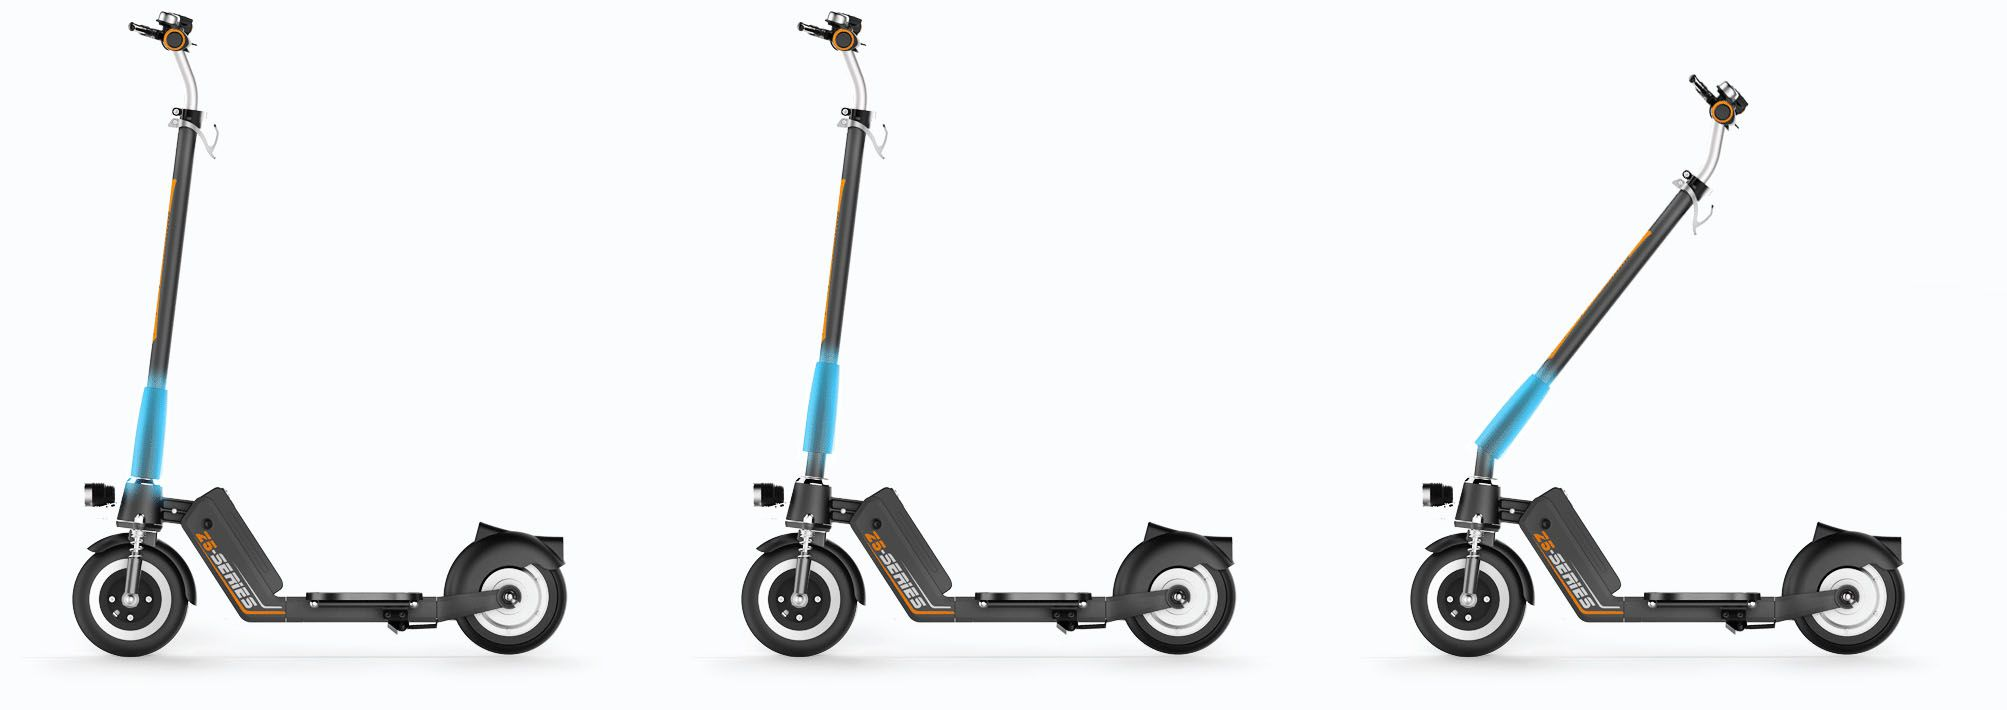 Z5 personal electric scooter